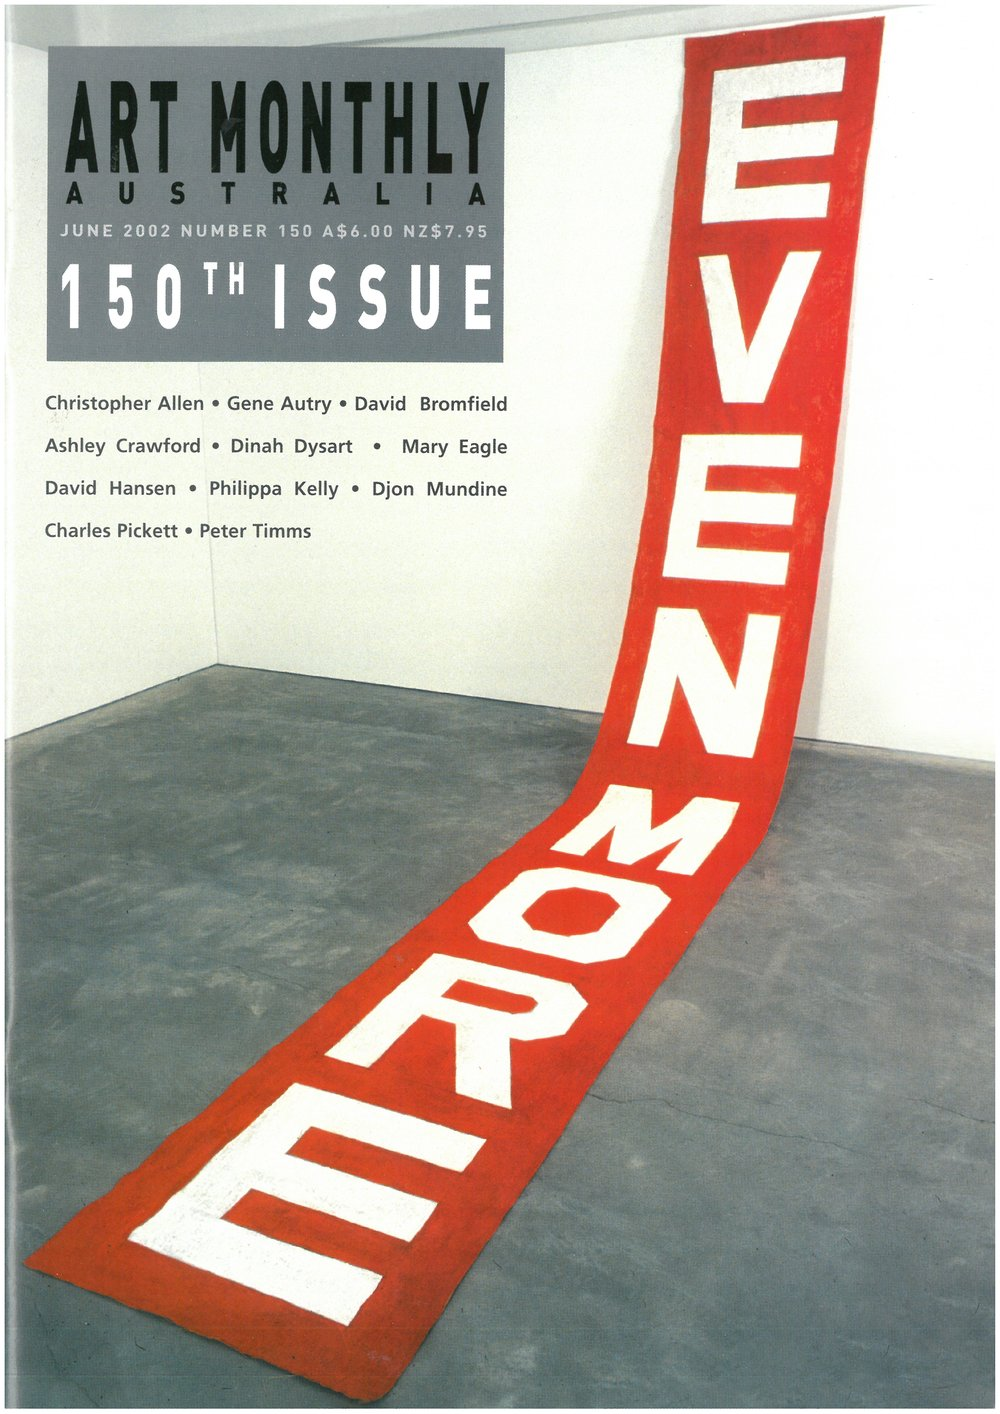 Issue 150 June 2002